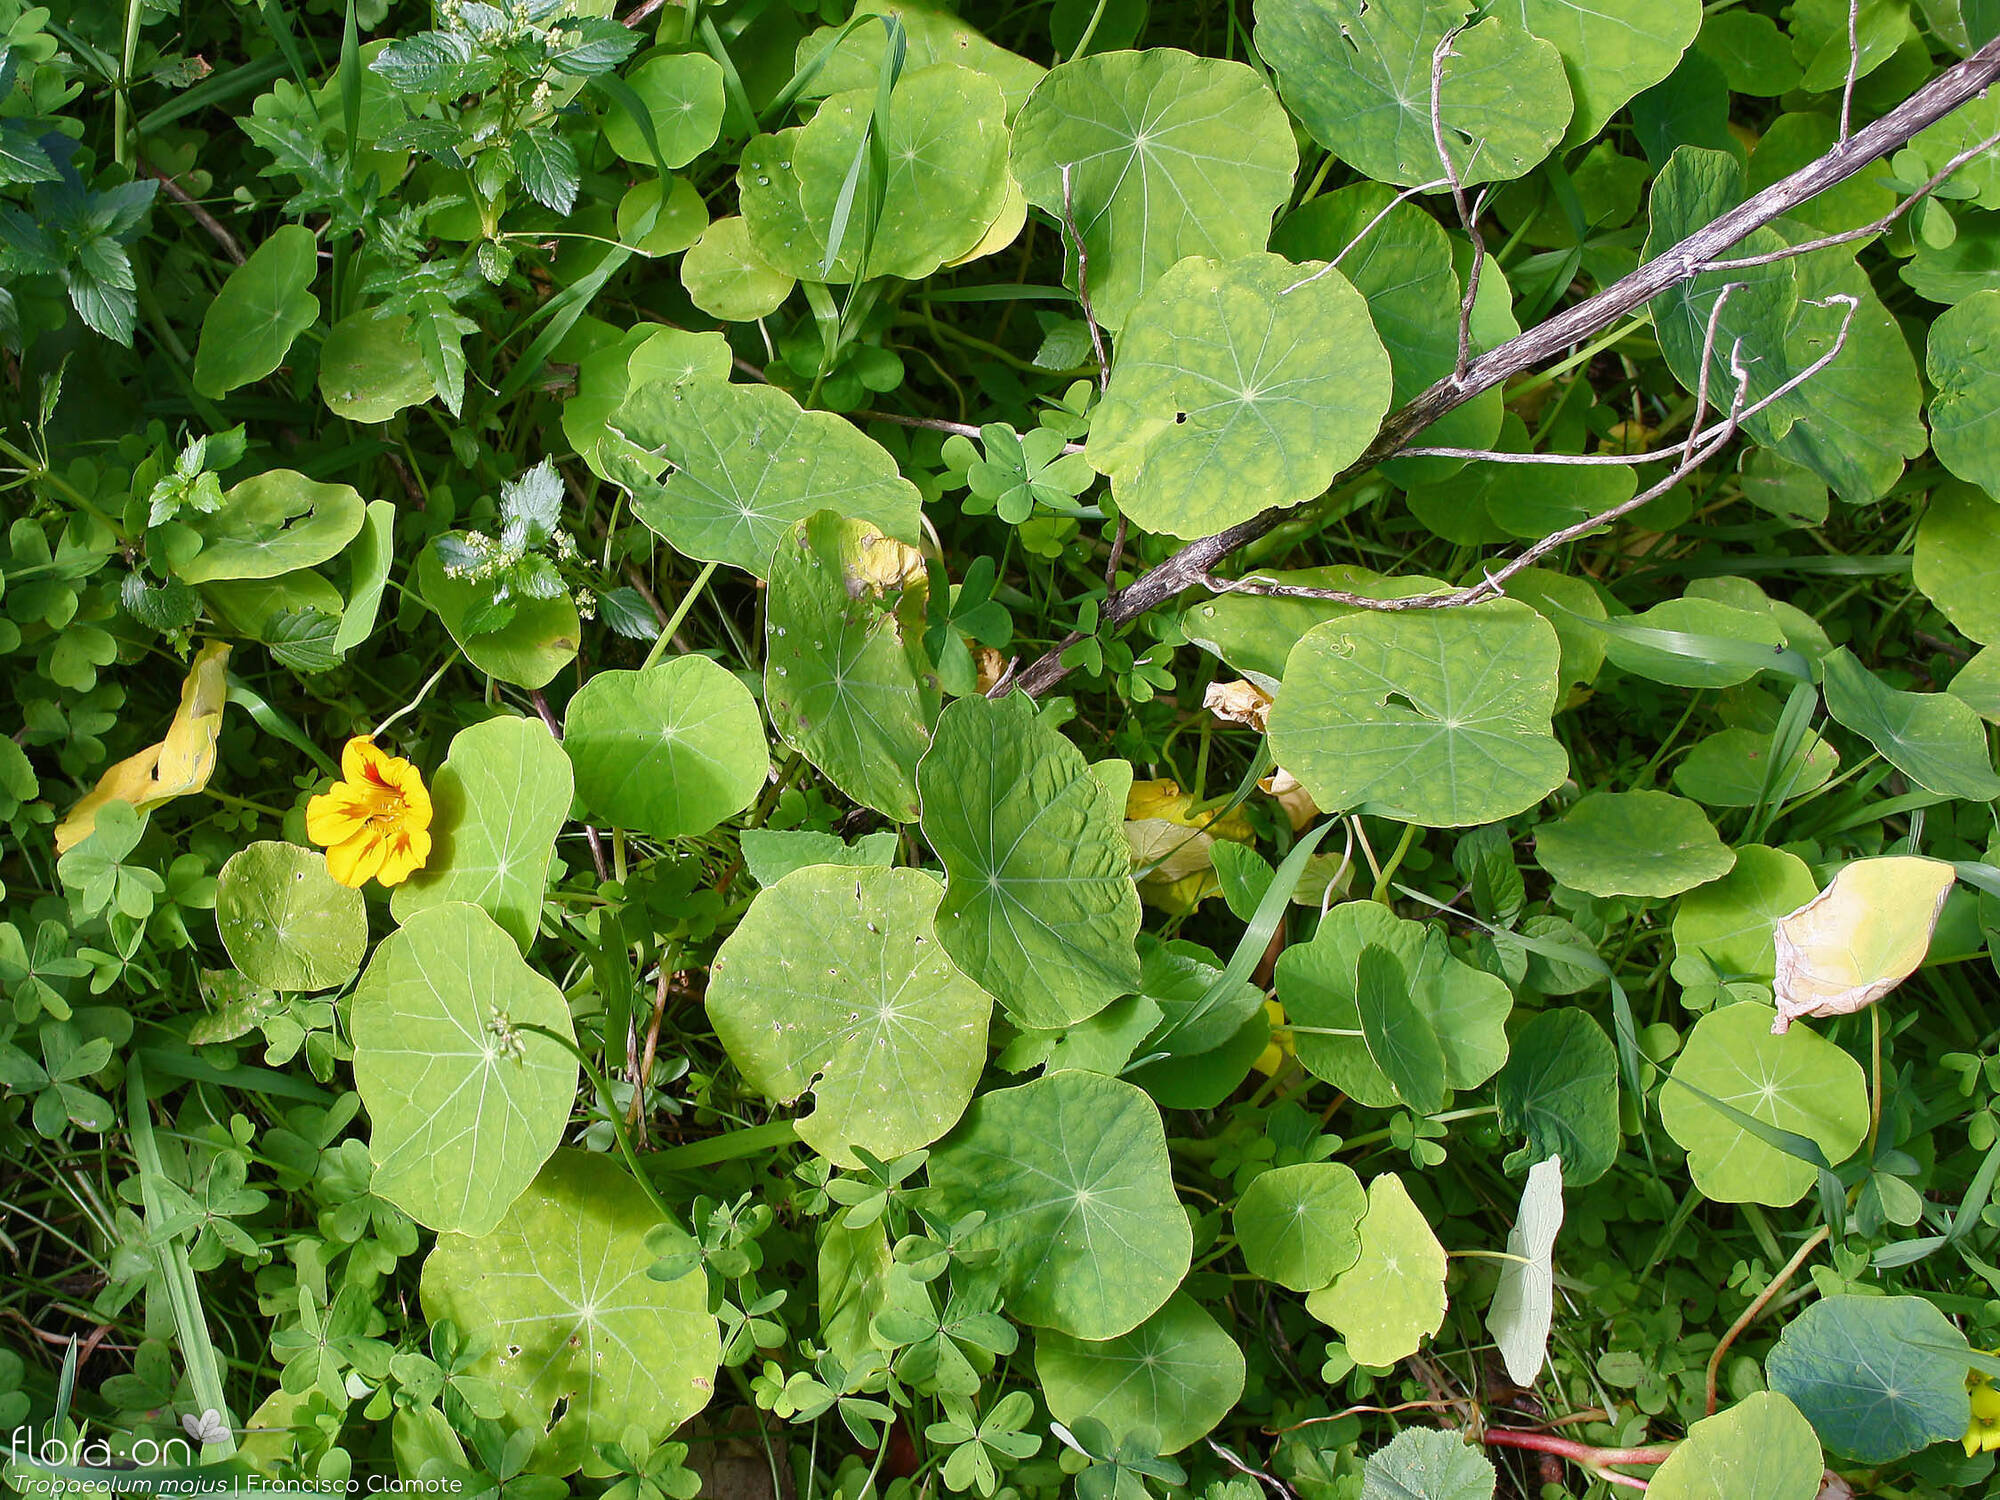 Tropaeolum majus - Hábito | Francisco Clamote; CC BY-NC 4.0